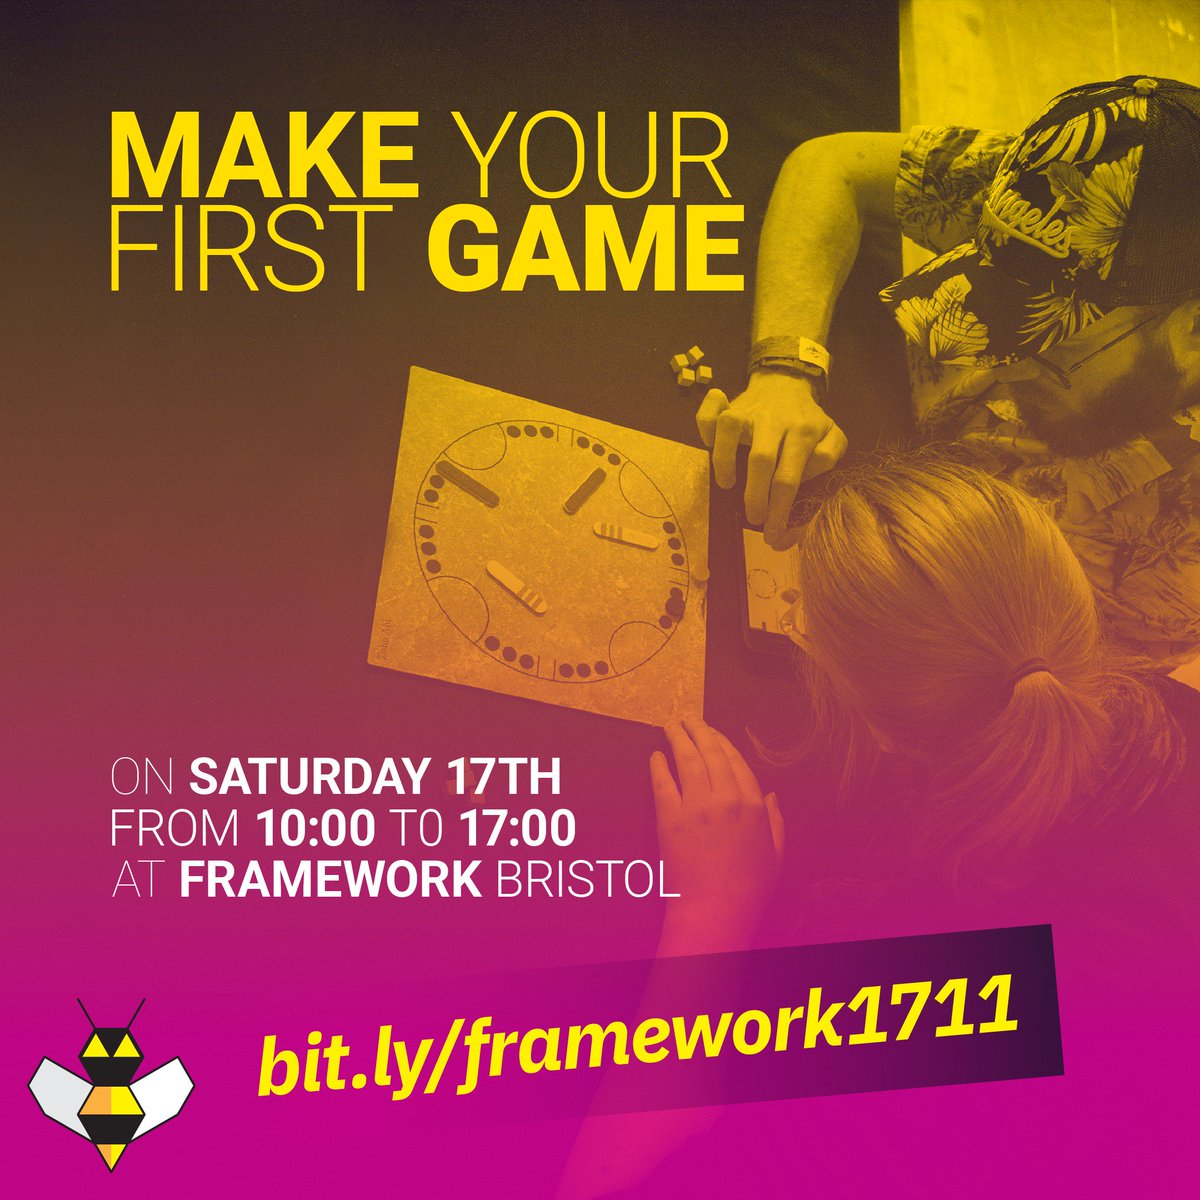 📢 Calling all aspiring game designers in #Bristol! Have you ever dreamt of making your own game, but have no idea where to start? Then come to this workshop on Saturday at @_Framework bit.ly/framework1711